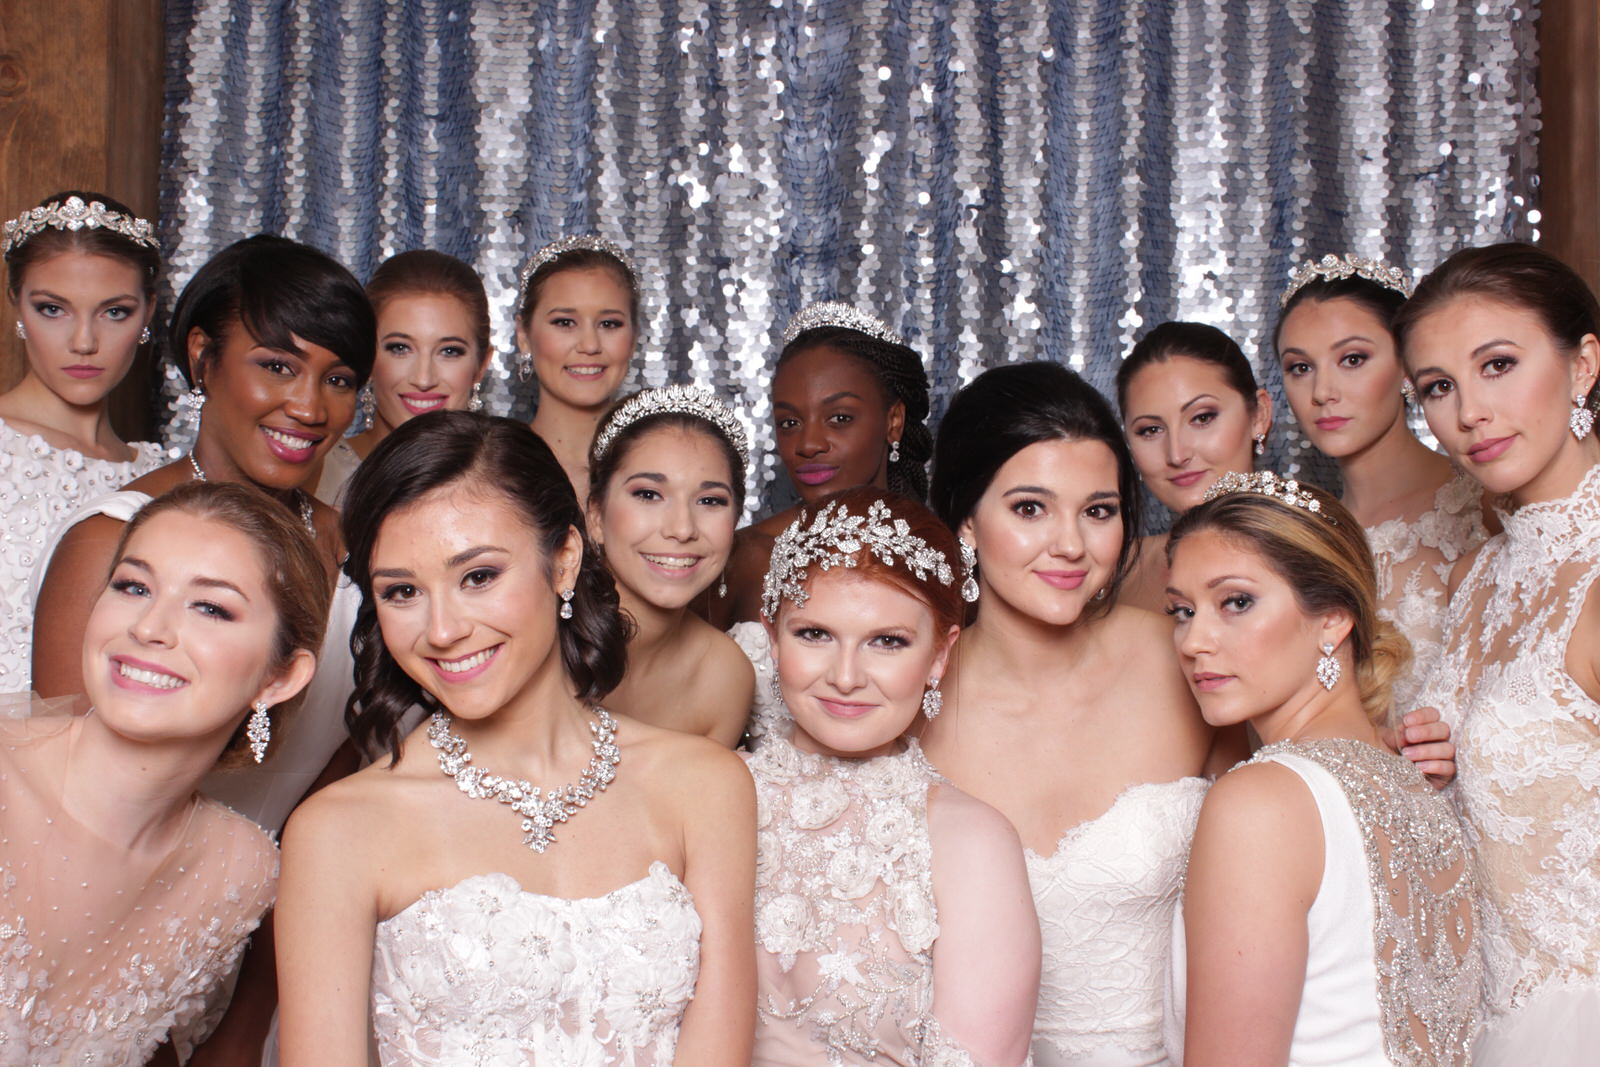 Lafayette,LA - Photo Booth - 5 Reasons to Attend a Bridal Show